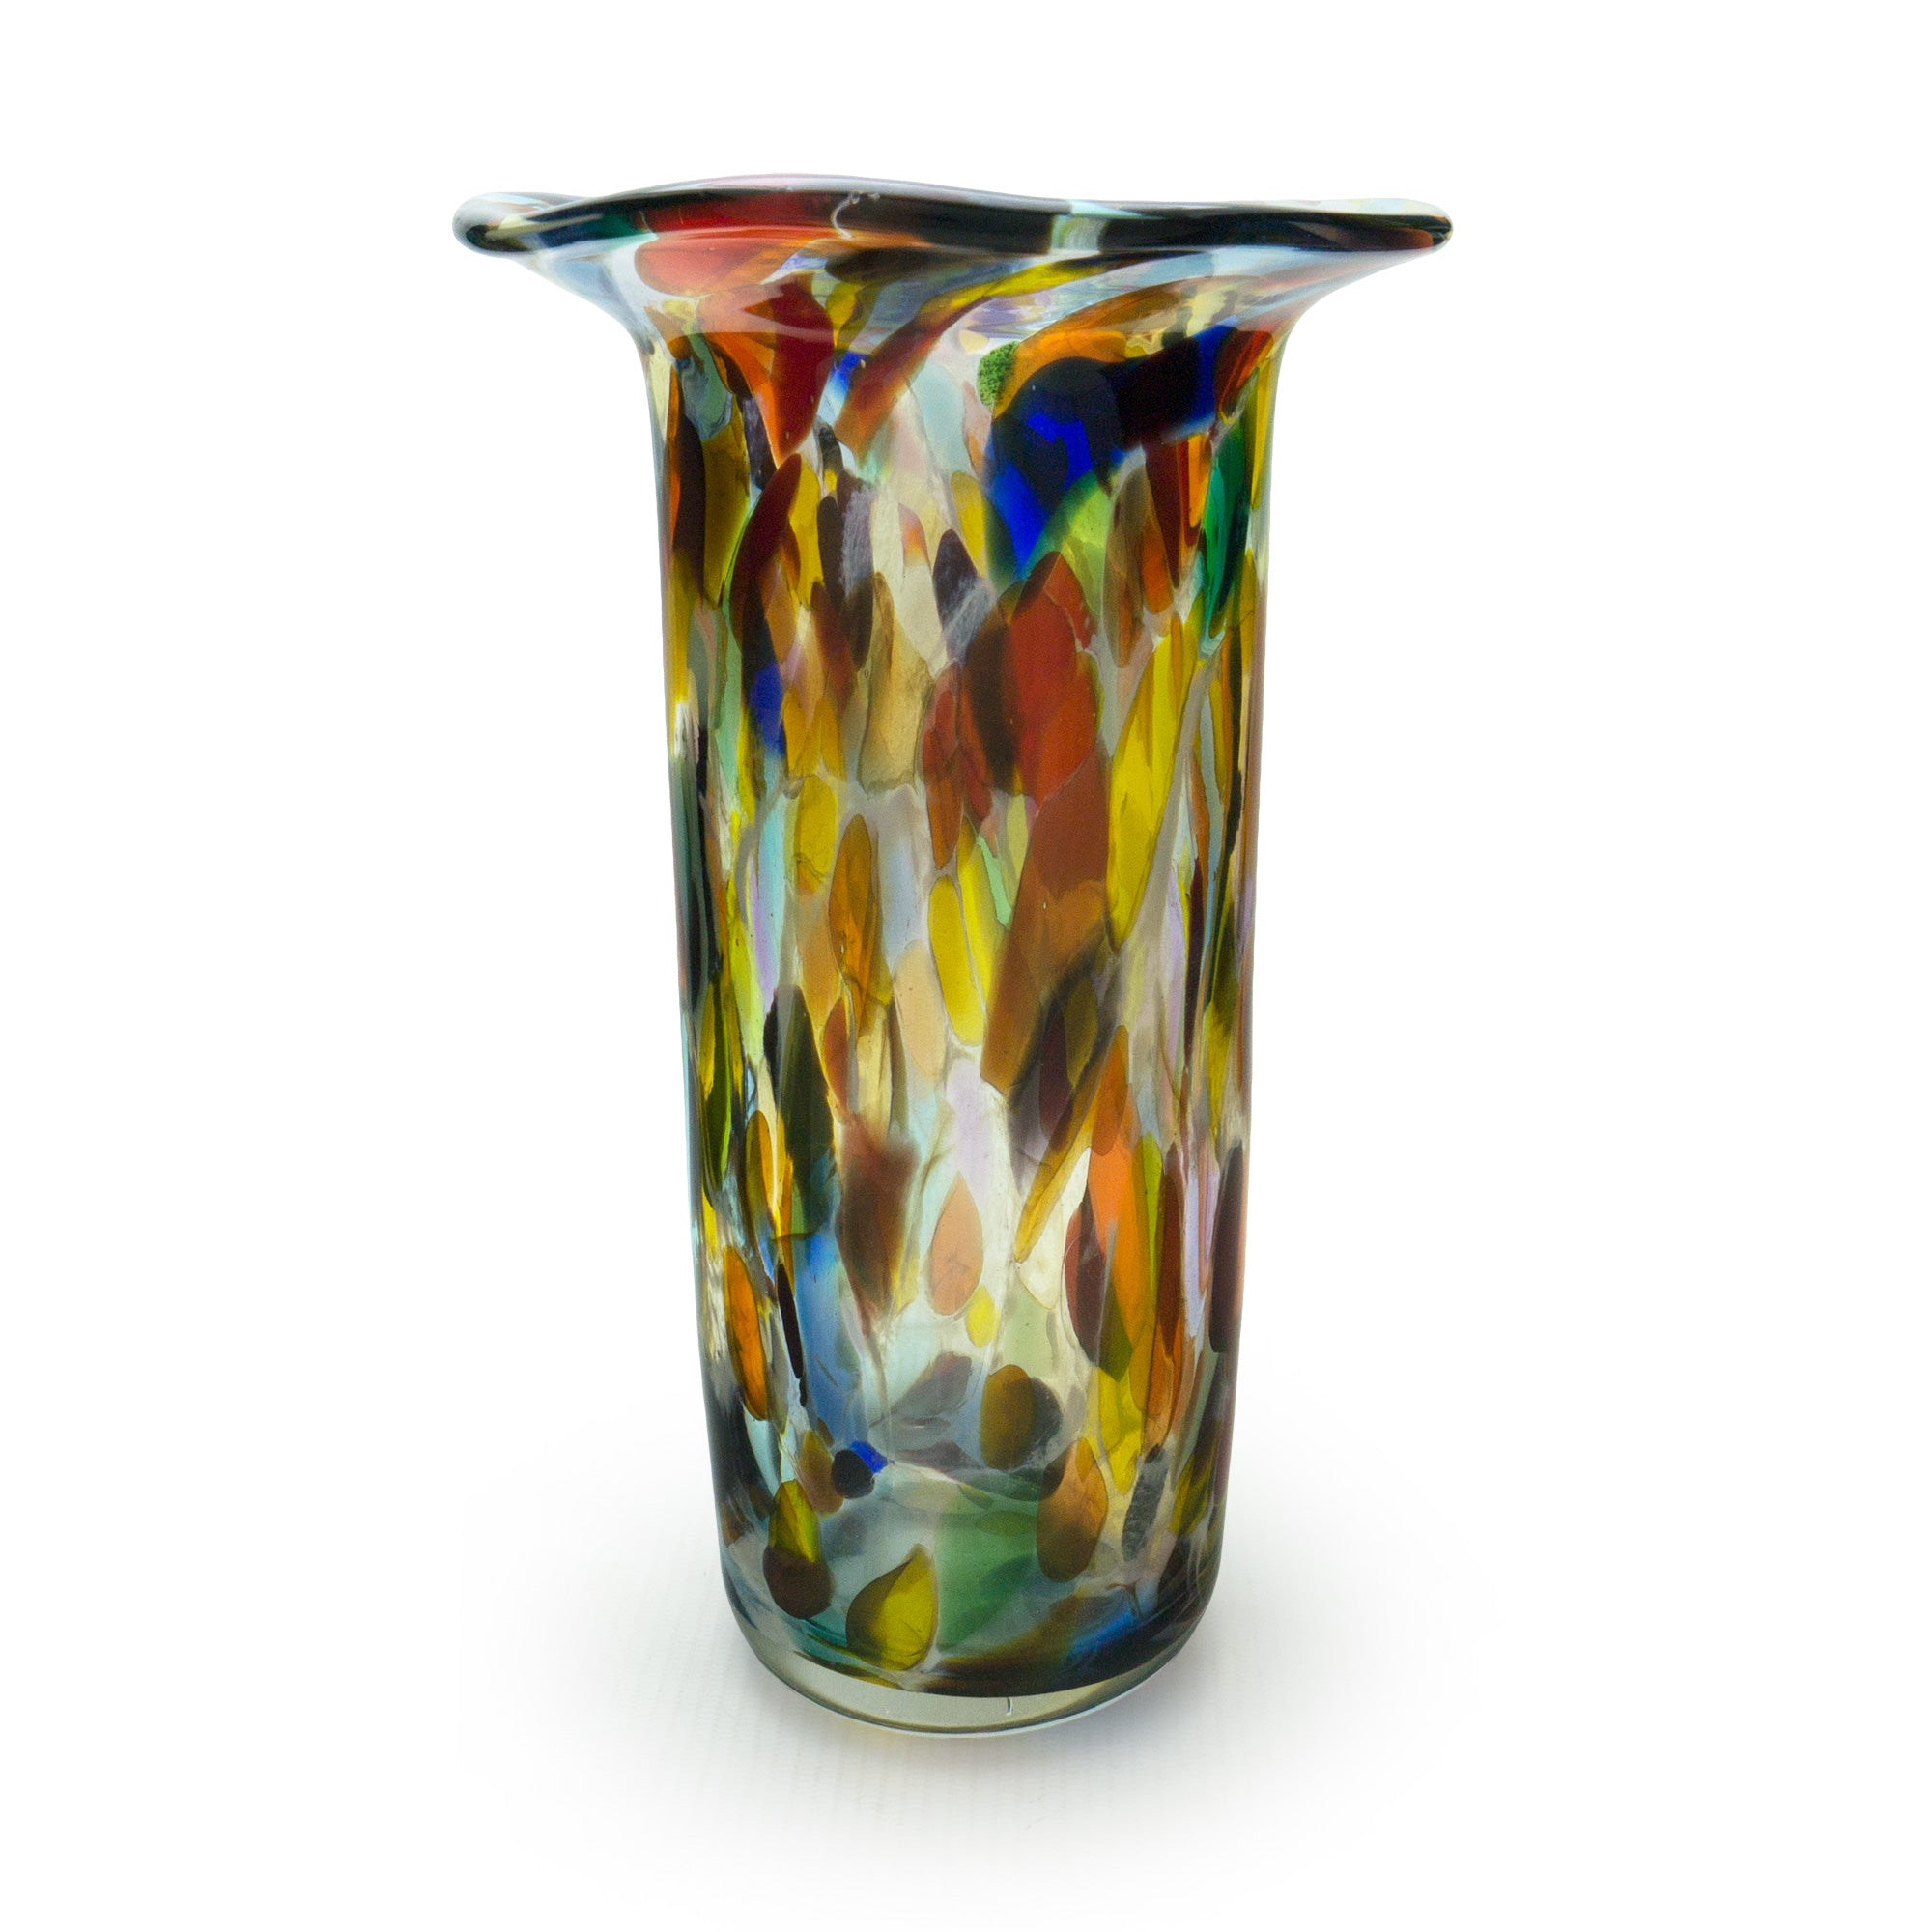 Gaudi Lipped Vase - SHAKSPEARE GLASS